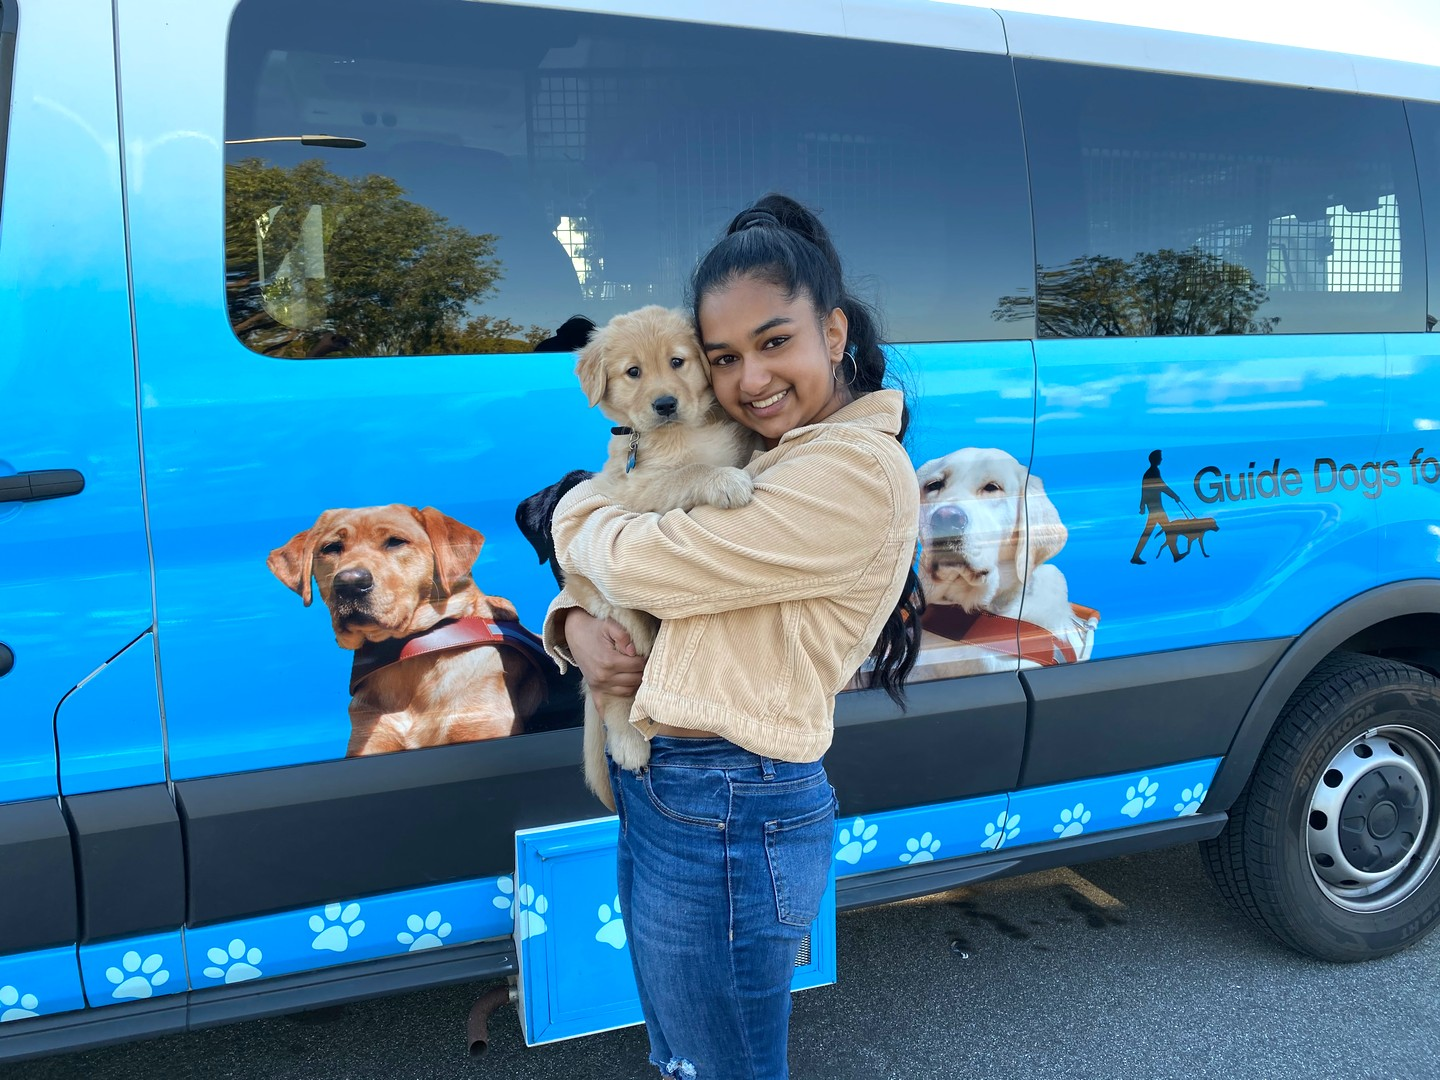 Avanthi with Puff at the puppy truck